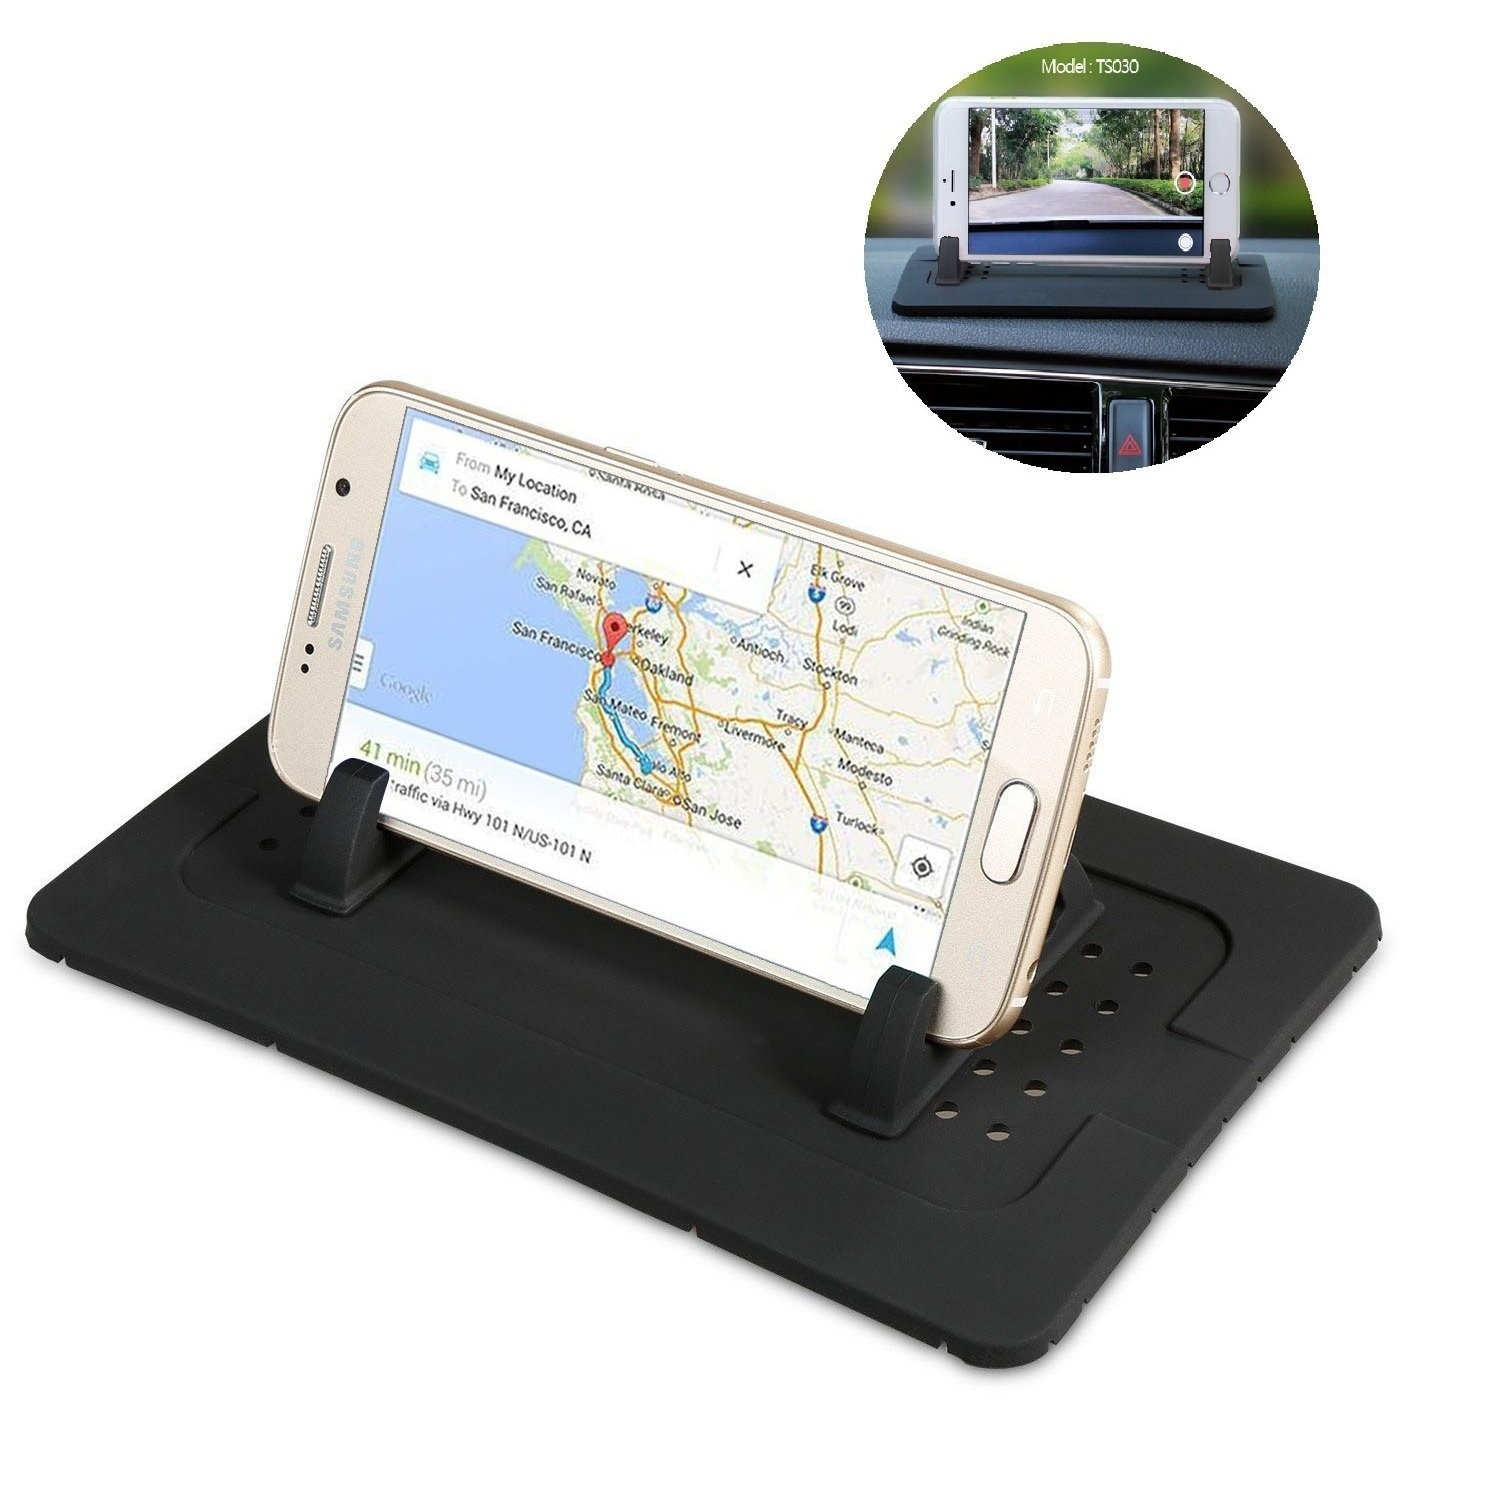 Silicone Car Phone Mount Holder, Car Pad Dash Mat Cradle Dock Anti-slip fpr  Any Smartphone iPhone 8/7/6 Plus Ipad tablet GPS Sat Nav Table Holder